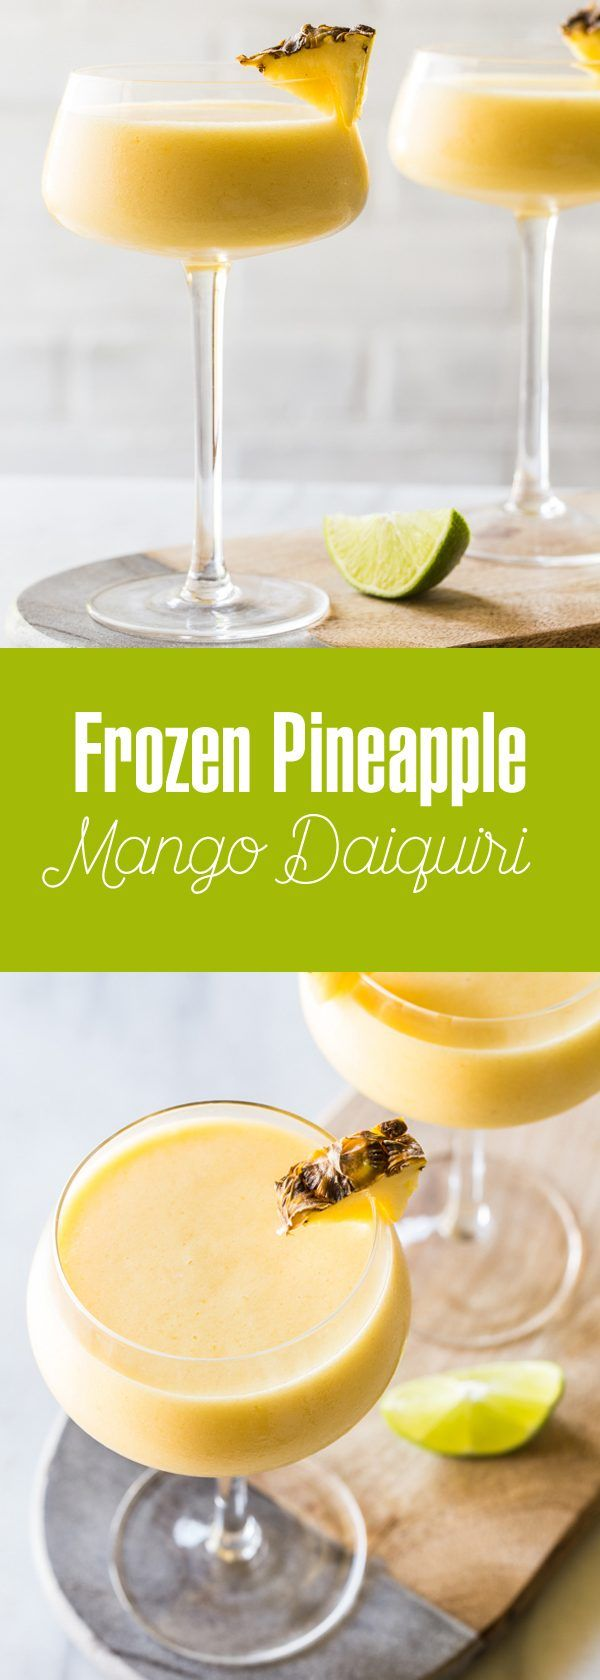 A Frozen Pineapple Mango Daiquiri is the ultimate hot weather cocktail: smooth, cold, fruity and not-too-sweet. Just perfect.